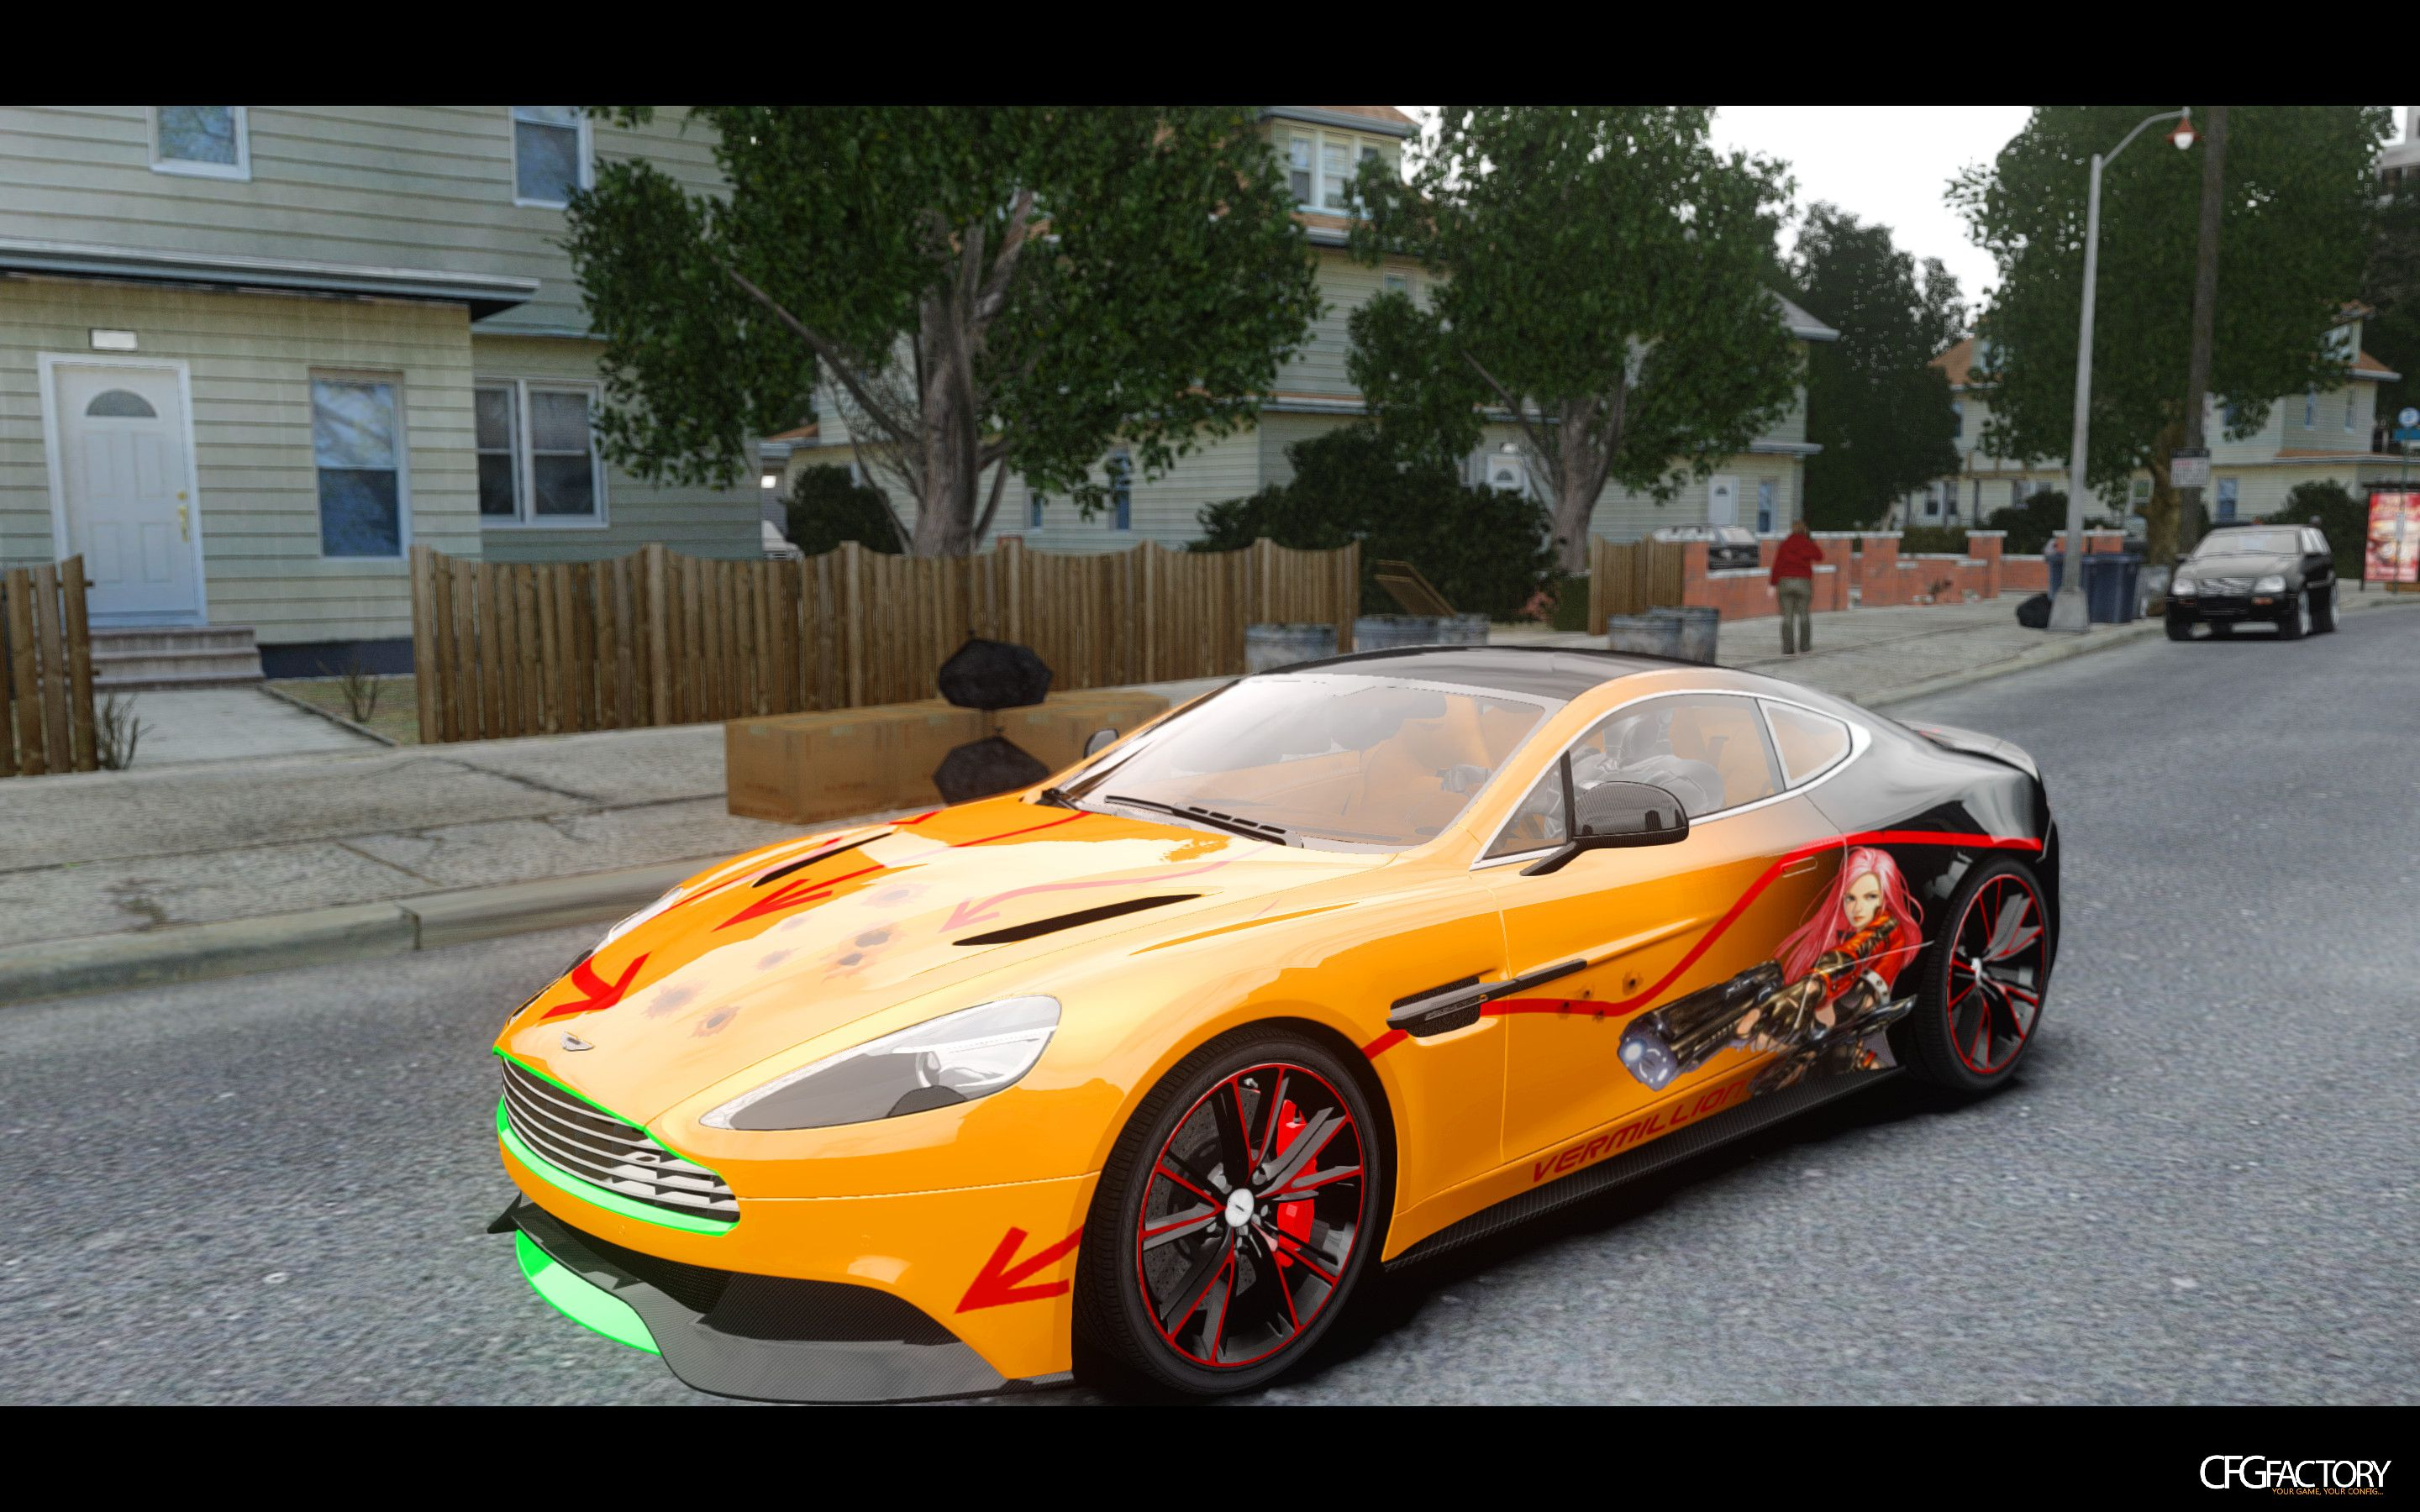 Aston Martin Vanquish Paintjob Download CFGFactory - Aston martin jobs